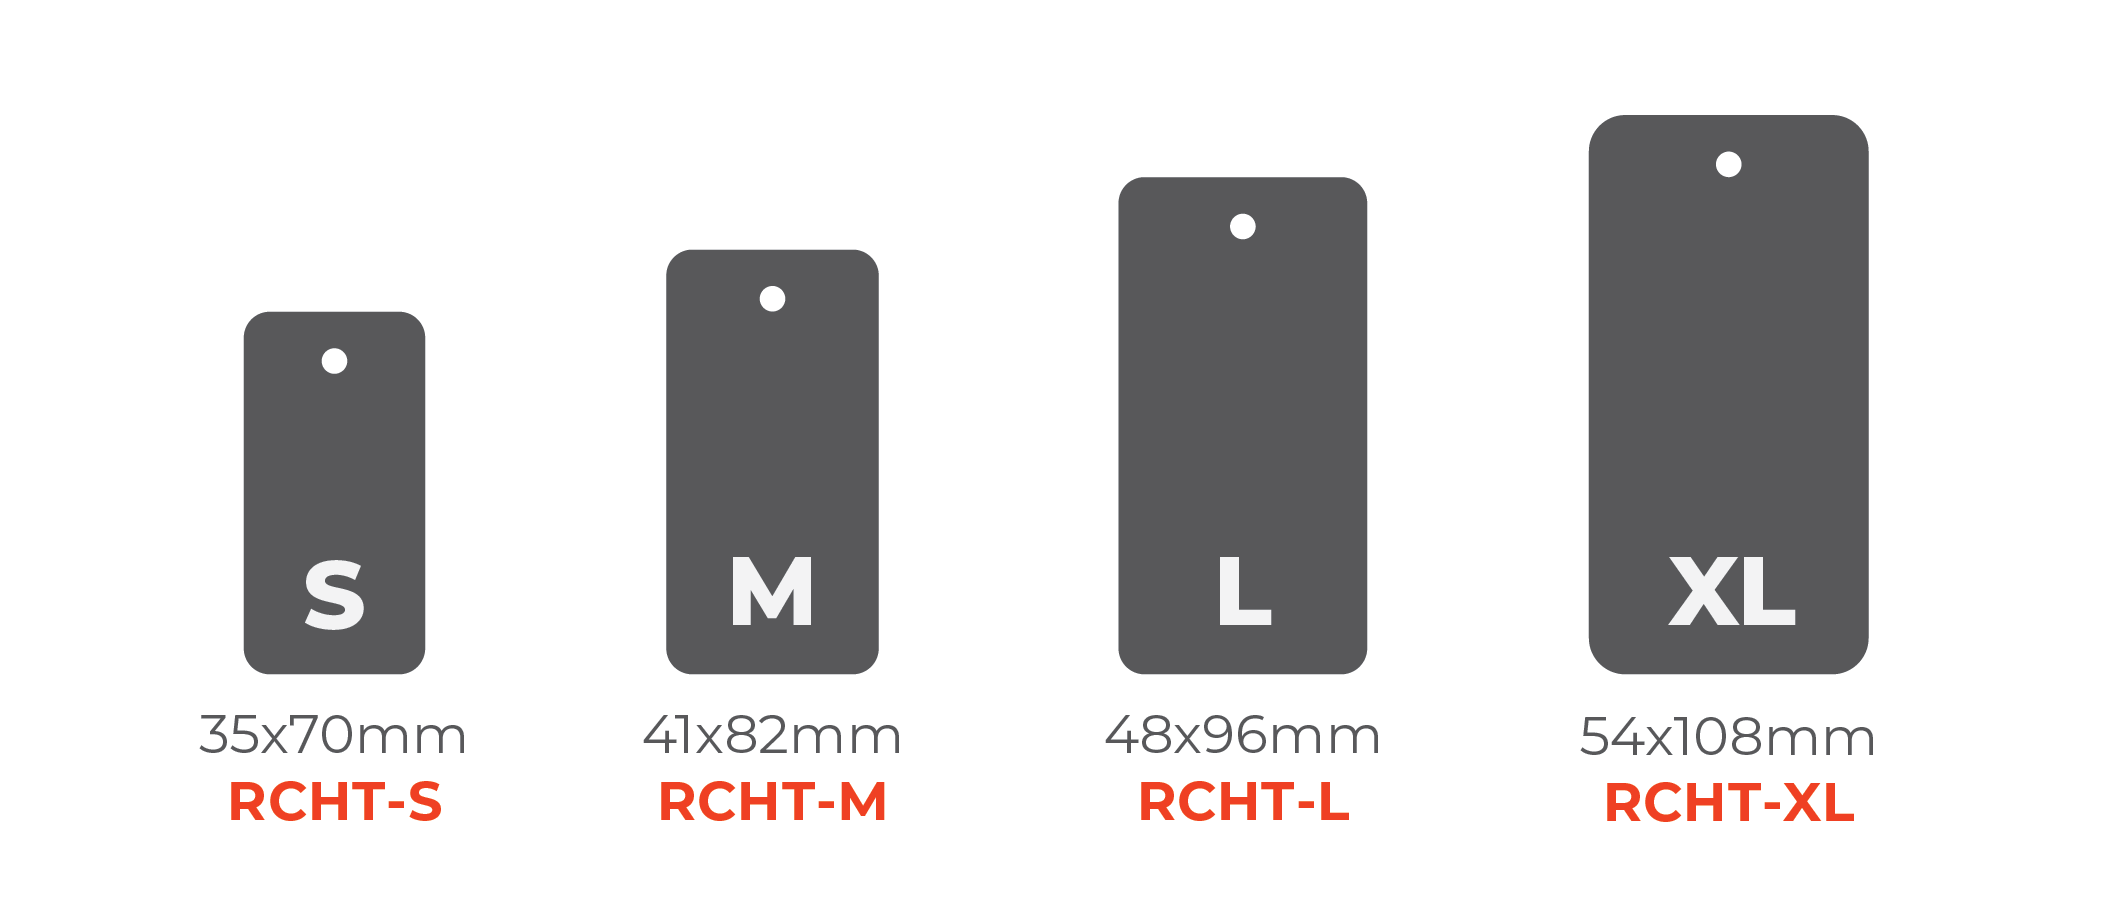 Standard Hang Tags - Round Corner Tags 0x0mm 01 Image